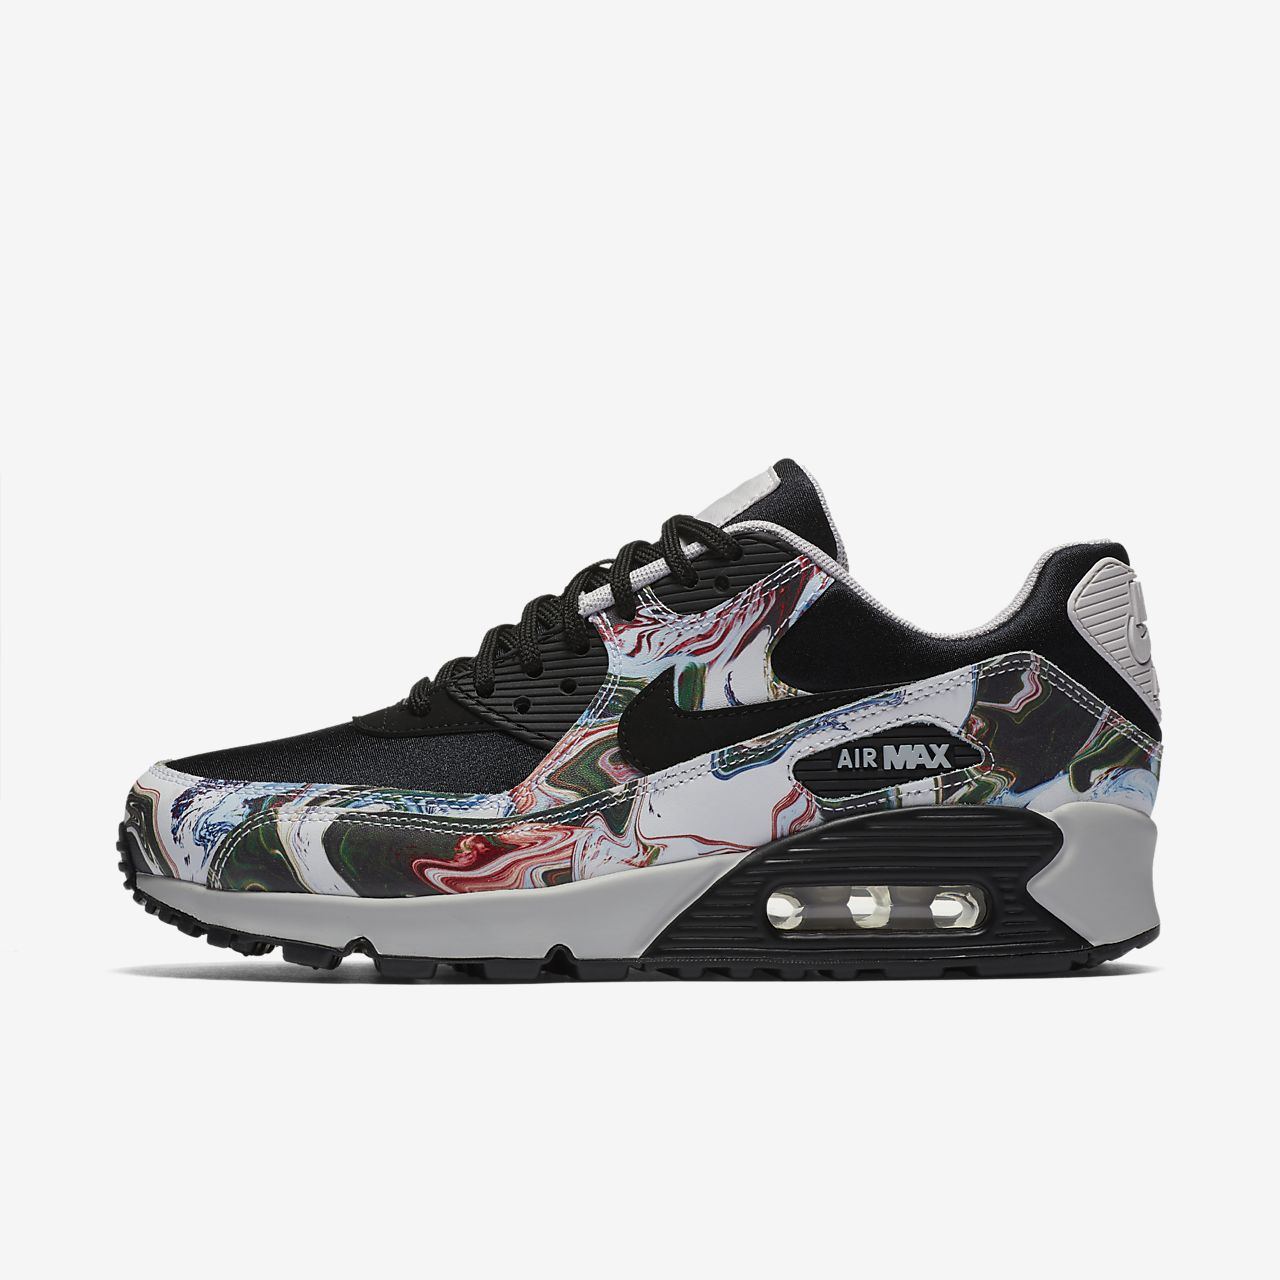 a78dc5c03dd1e Nike Air Max 90 Womens   Buy Nike Shoes   Sneakers - Bluelilyandblue.com